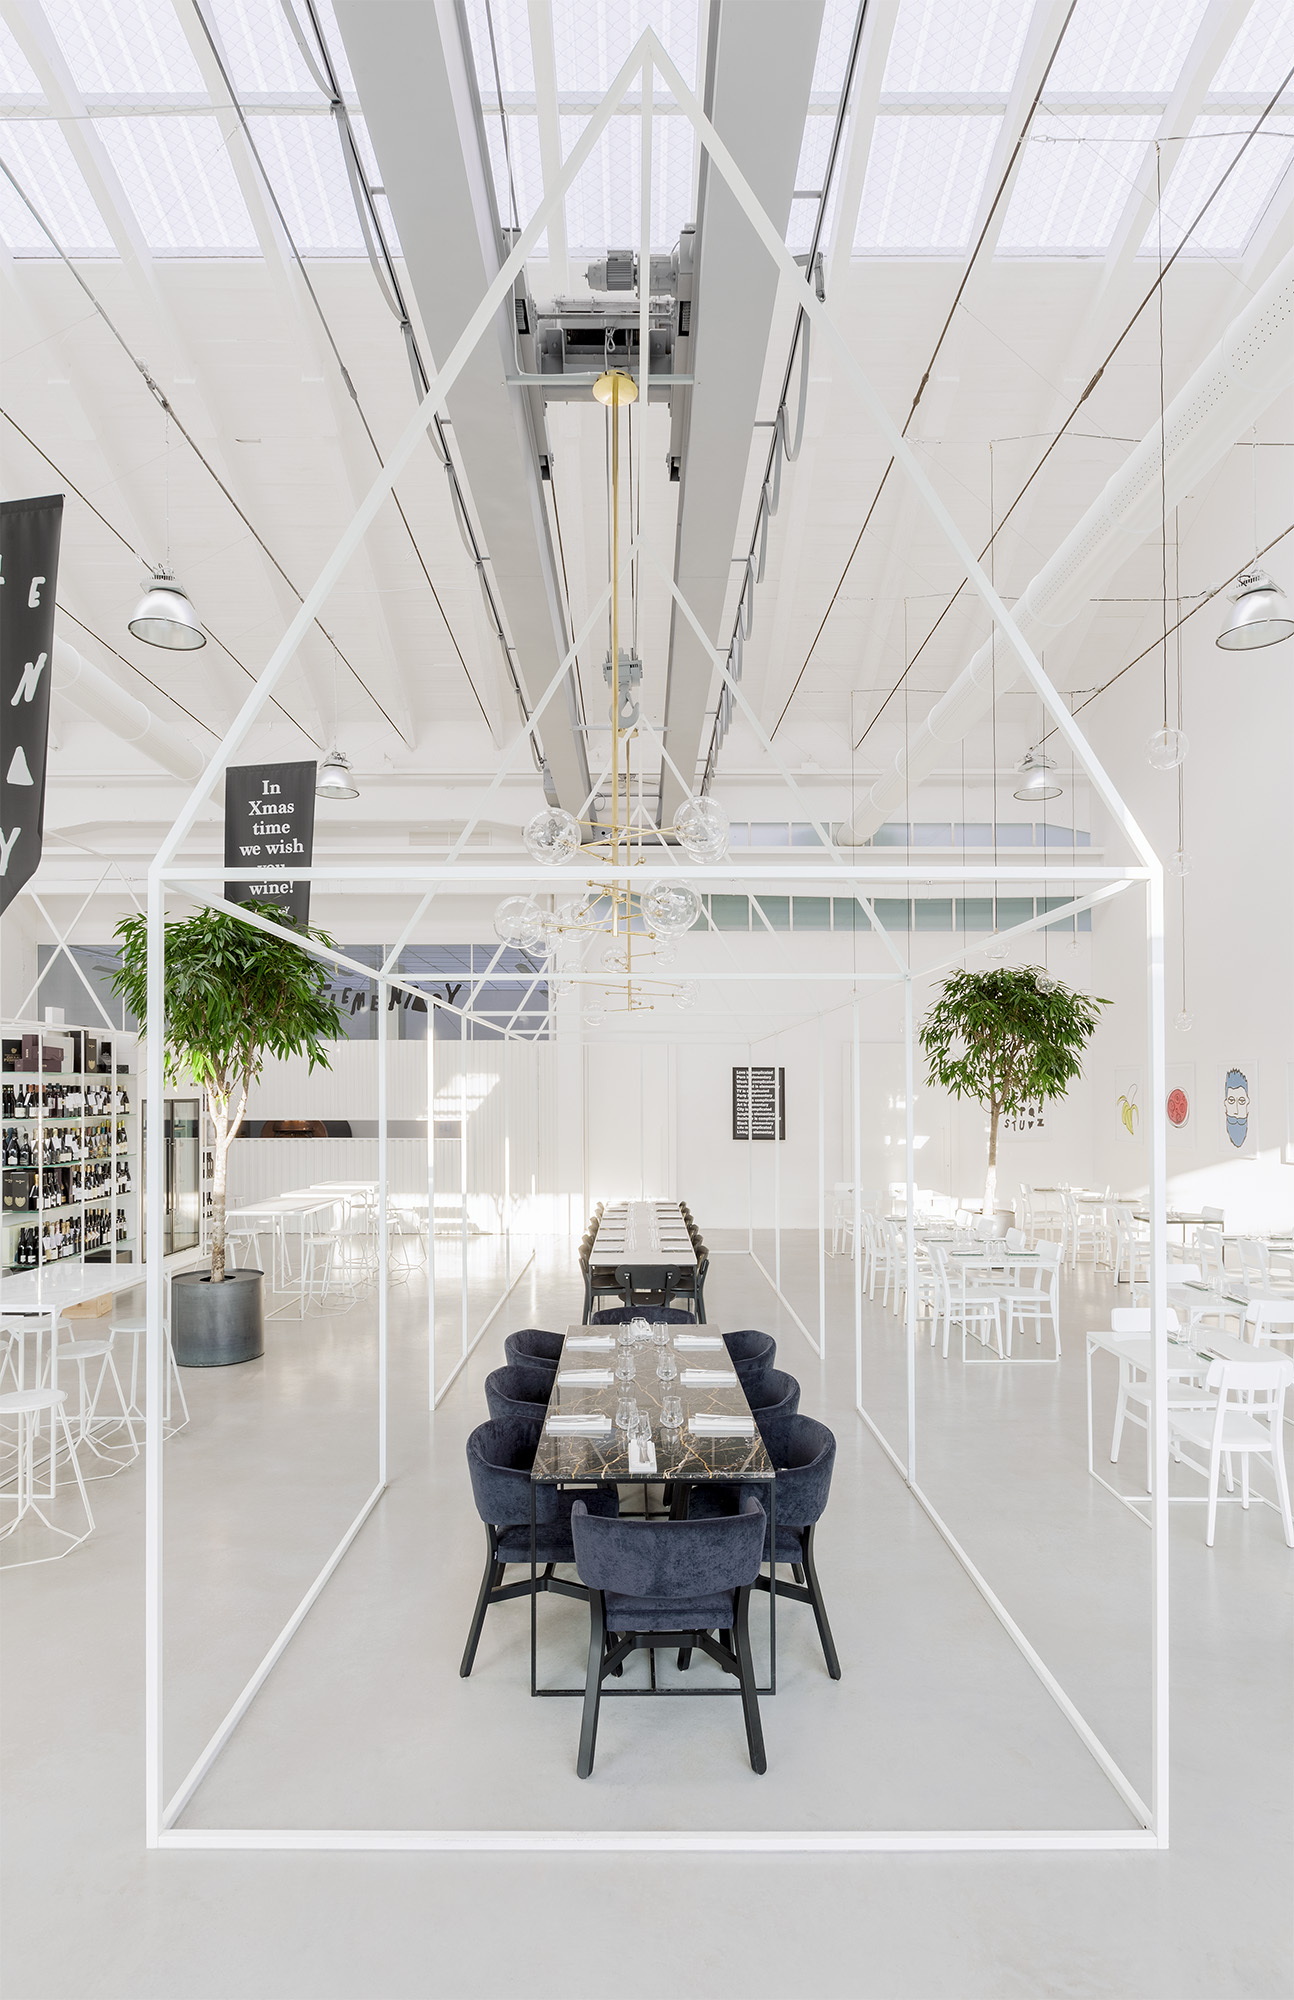 Gallery of the b zone 1882 concept store a m 2 for Notion architecture